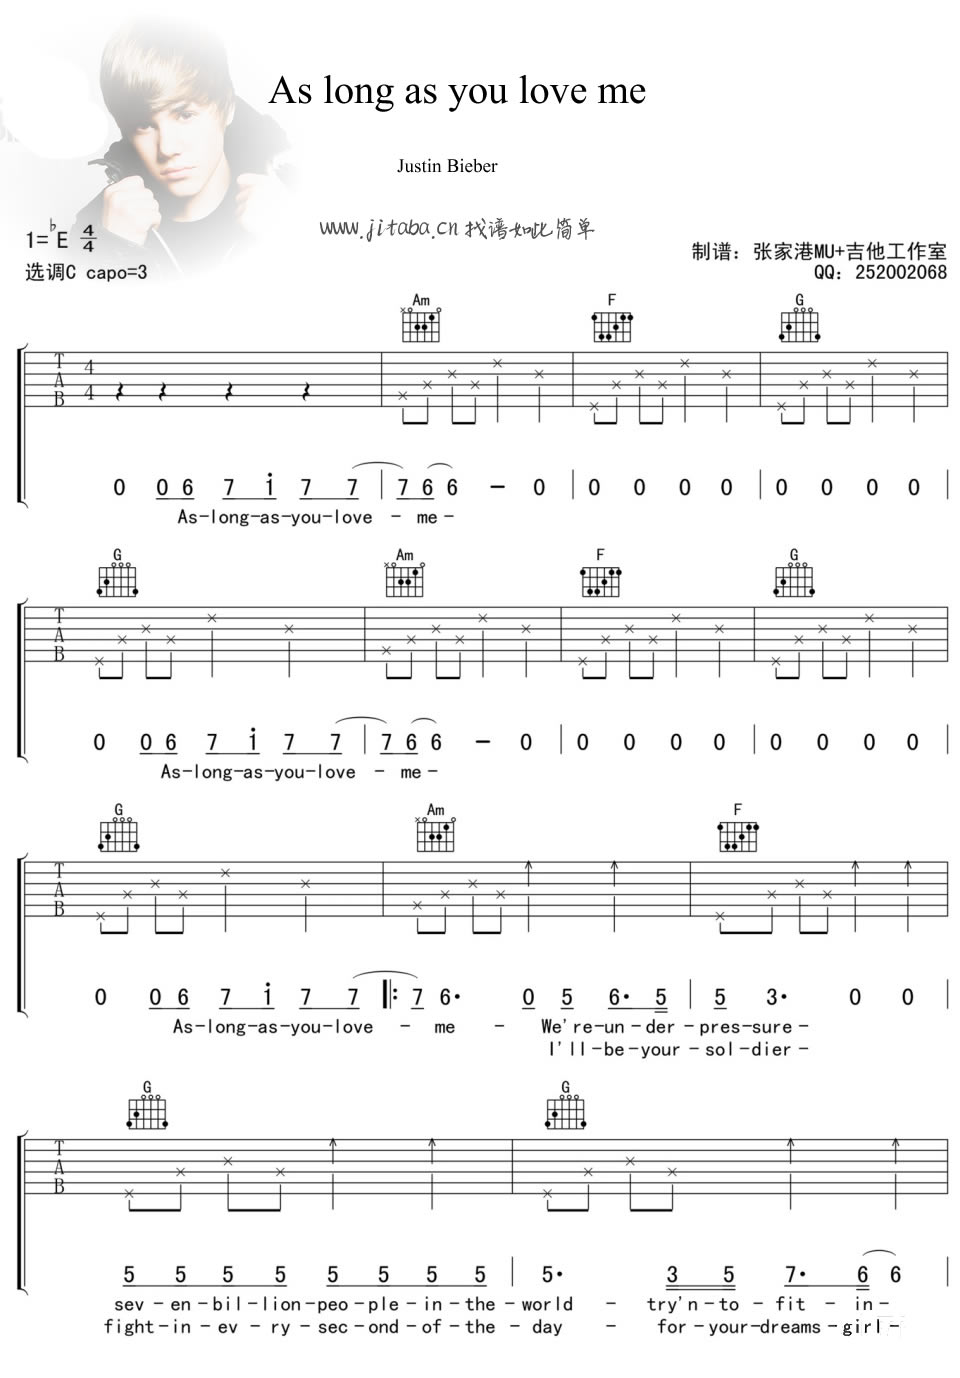 As long as you love me吉他谱